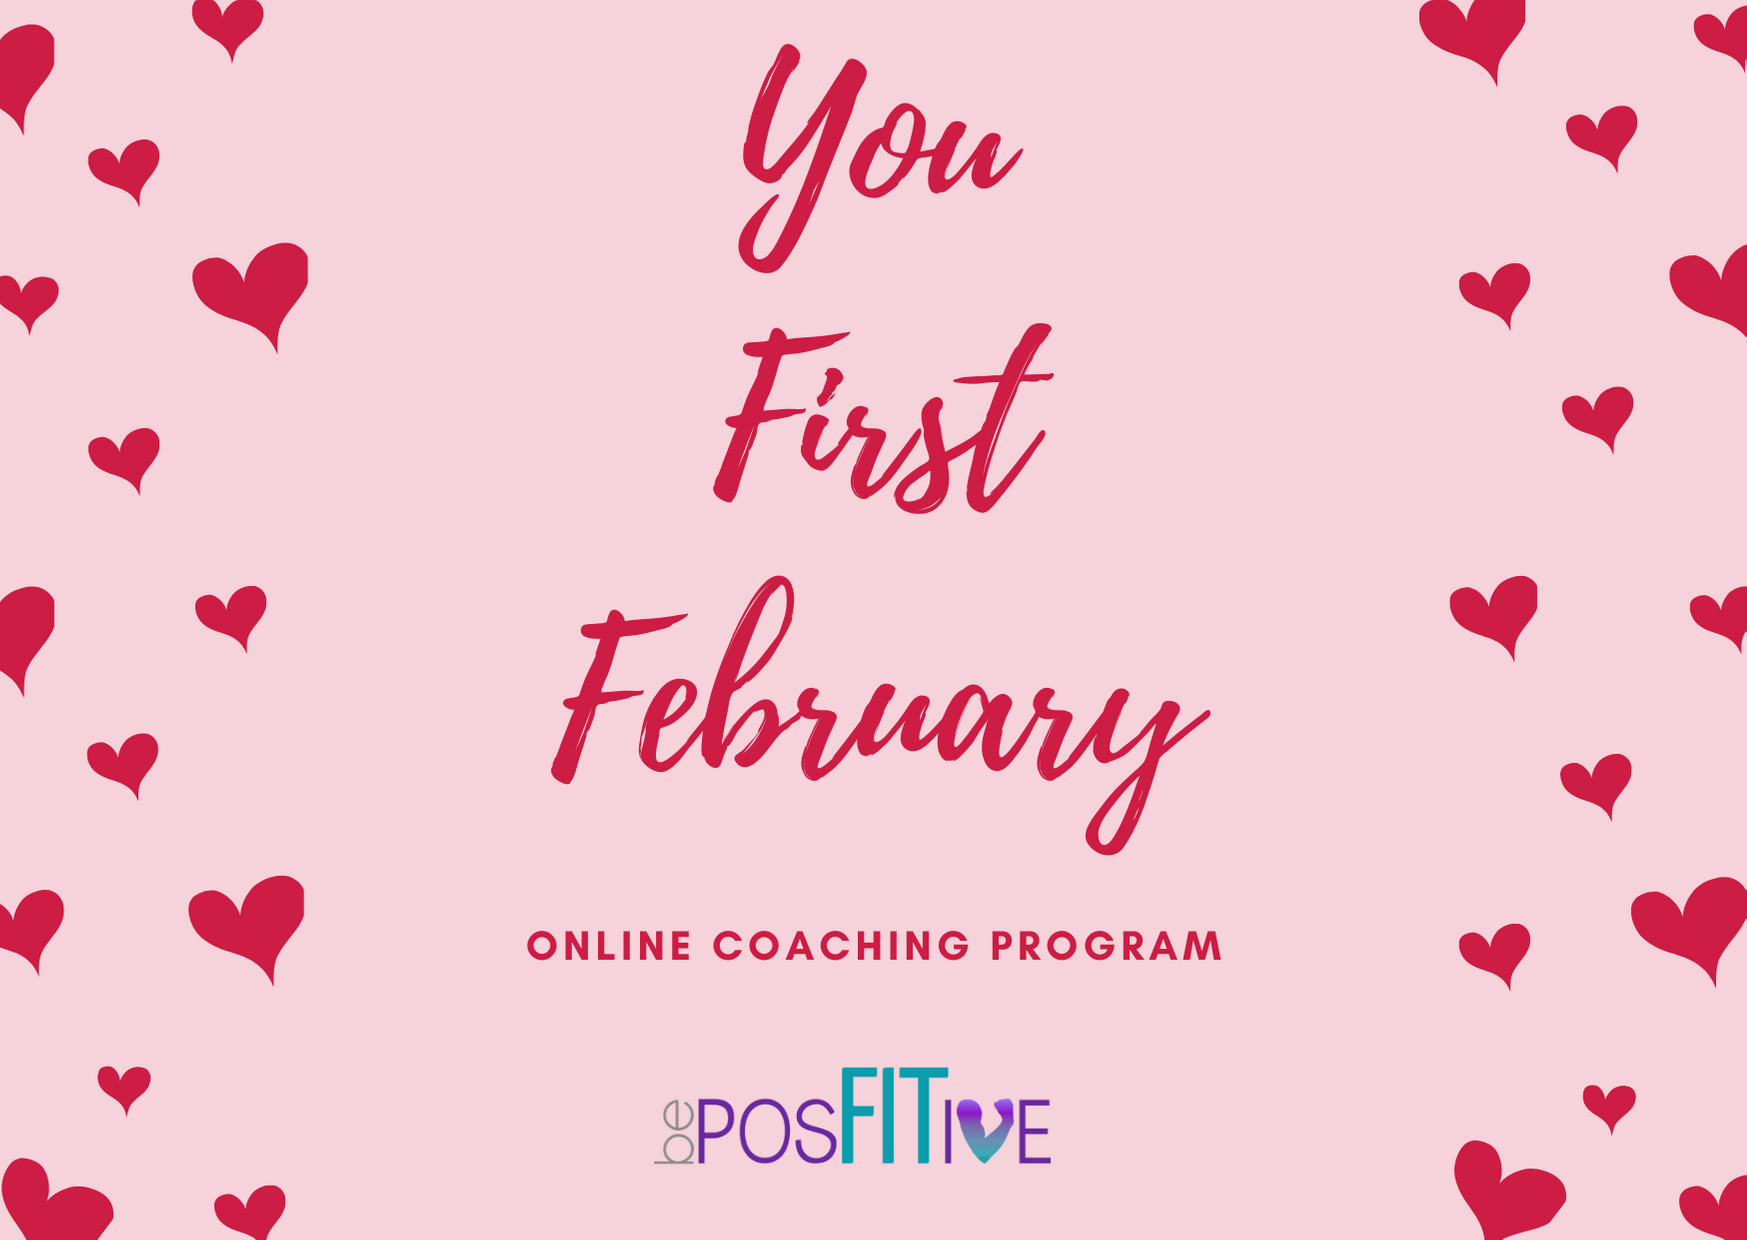 You First February